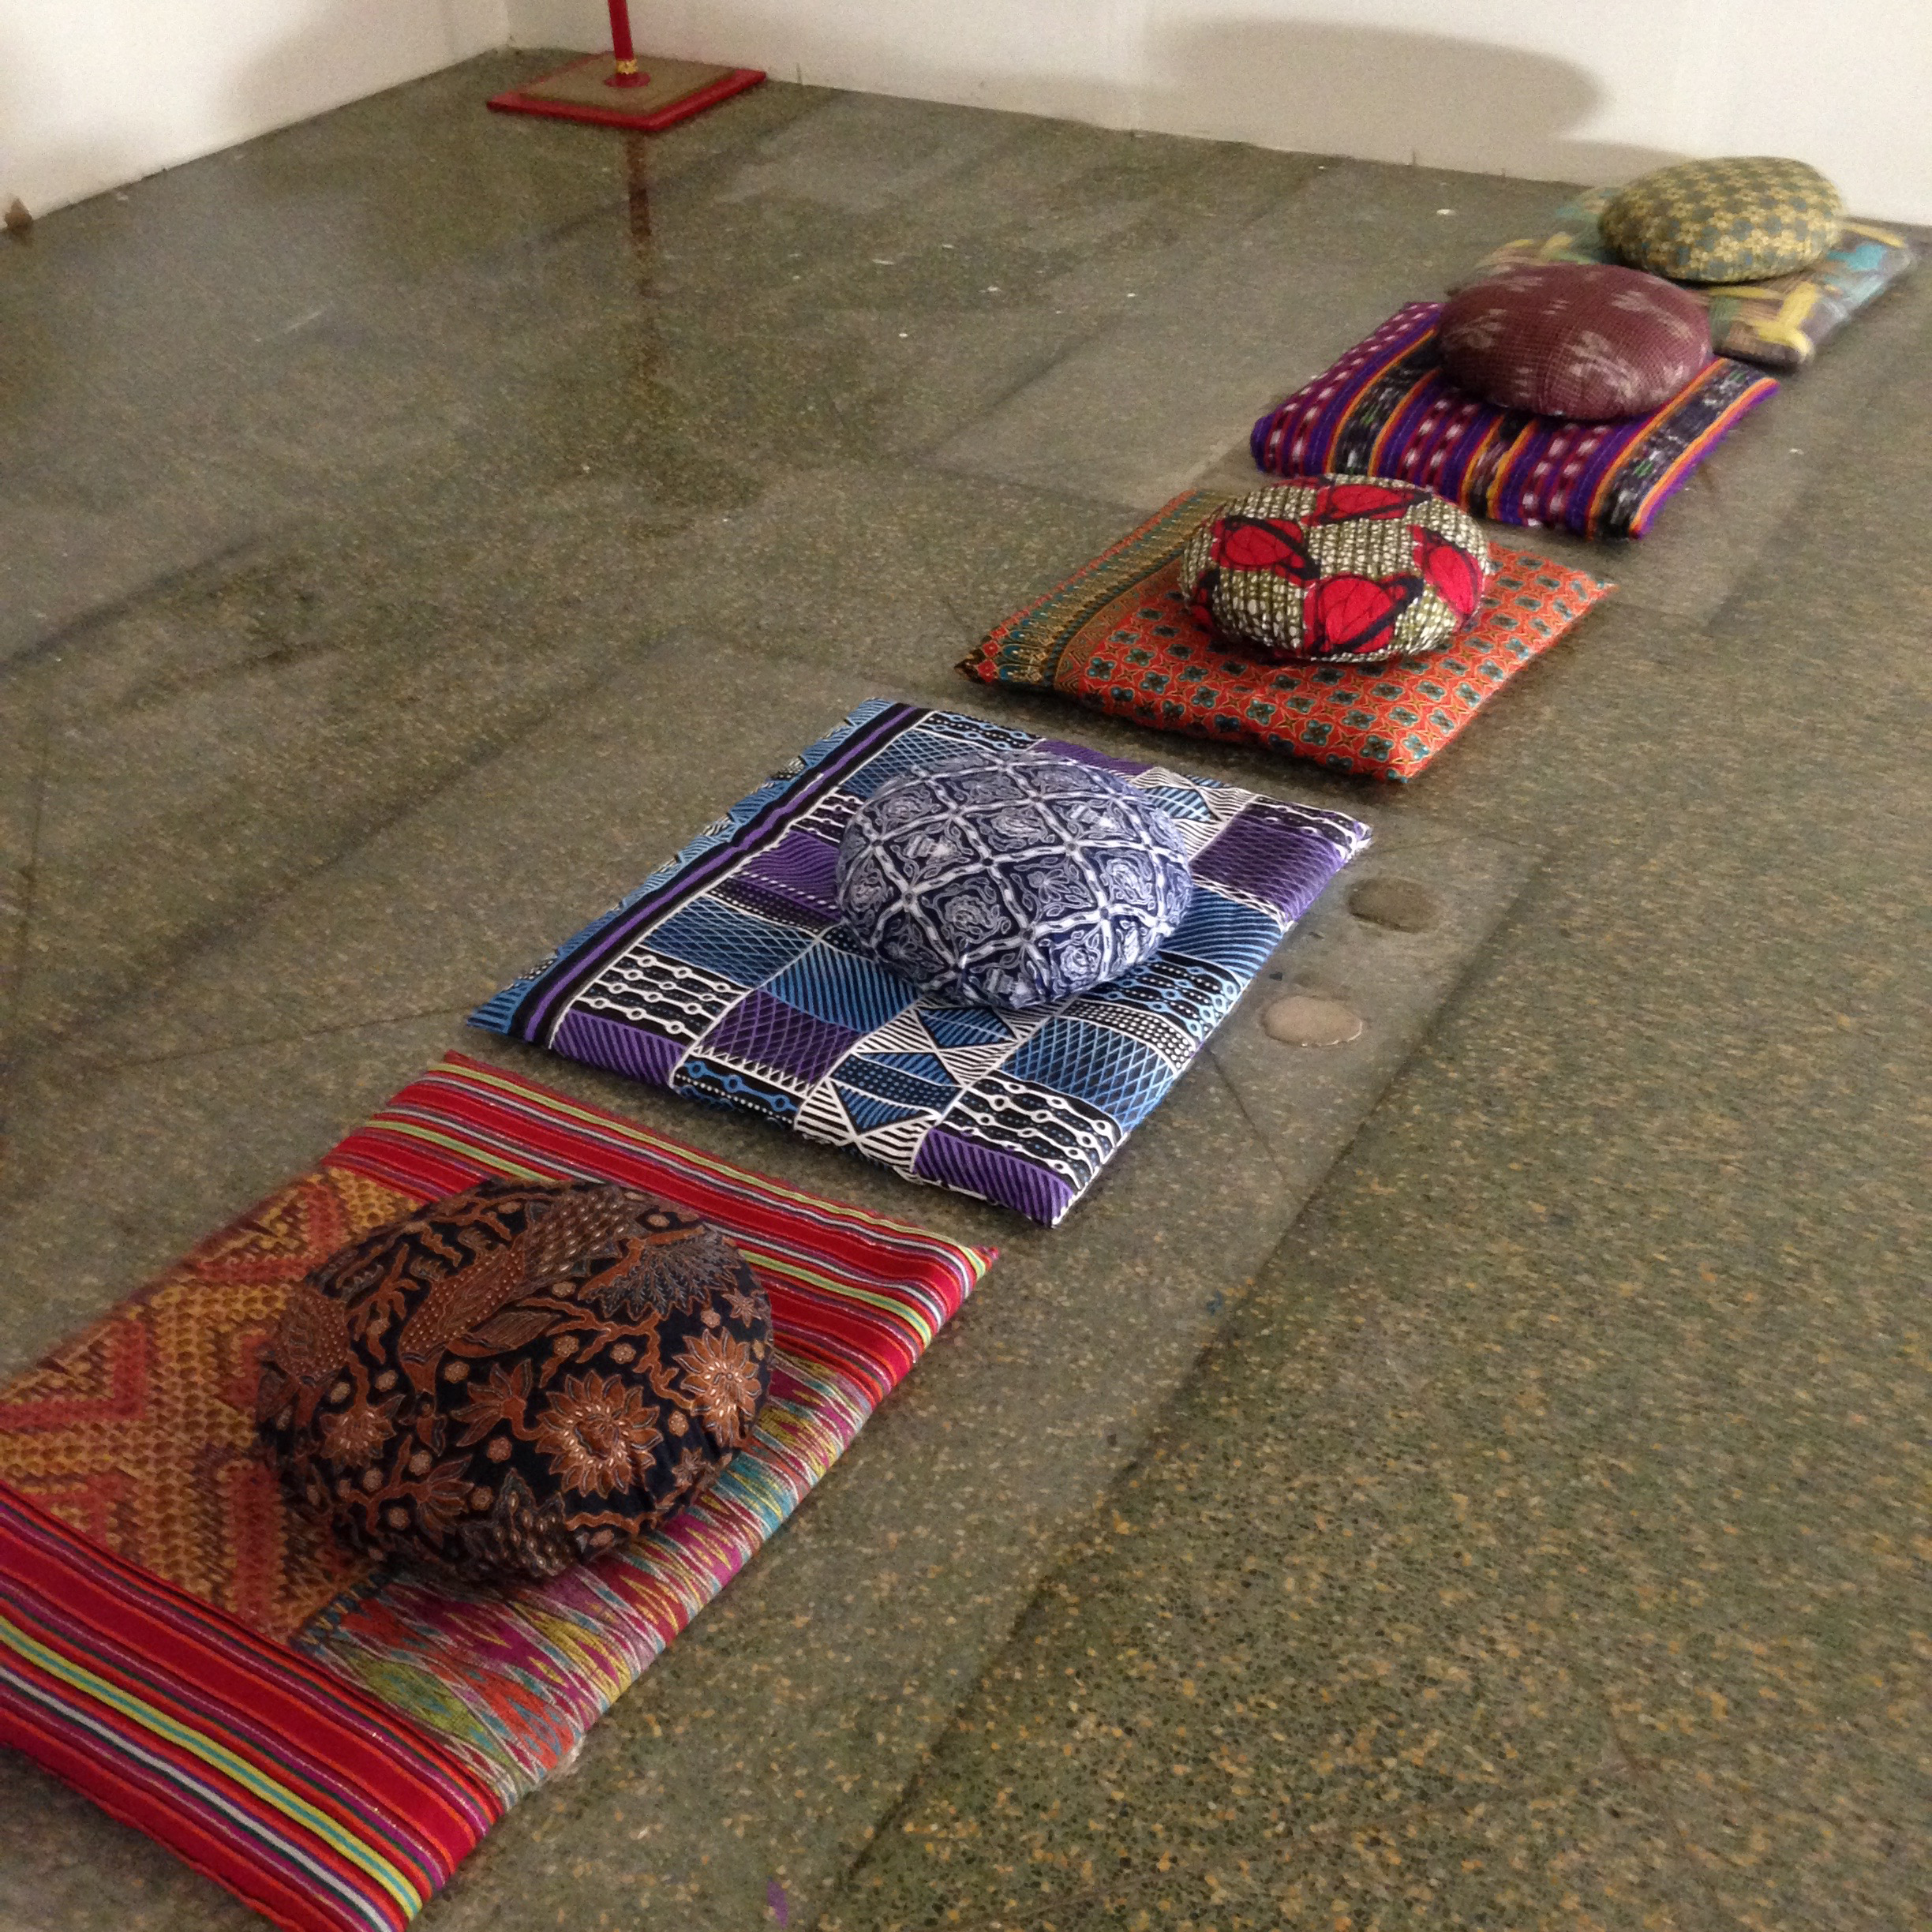 5 sets of meditation cushions for The Mandala Project. Each set covered in textiles form around the world including, Bali, Guatemala, Africa, Java, Australia. 2015